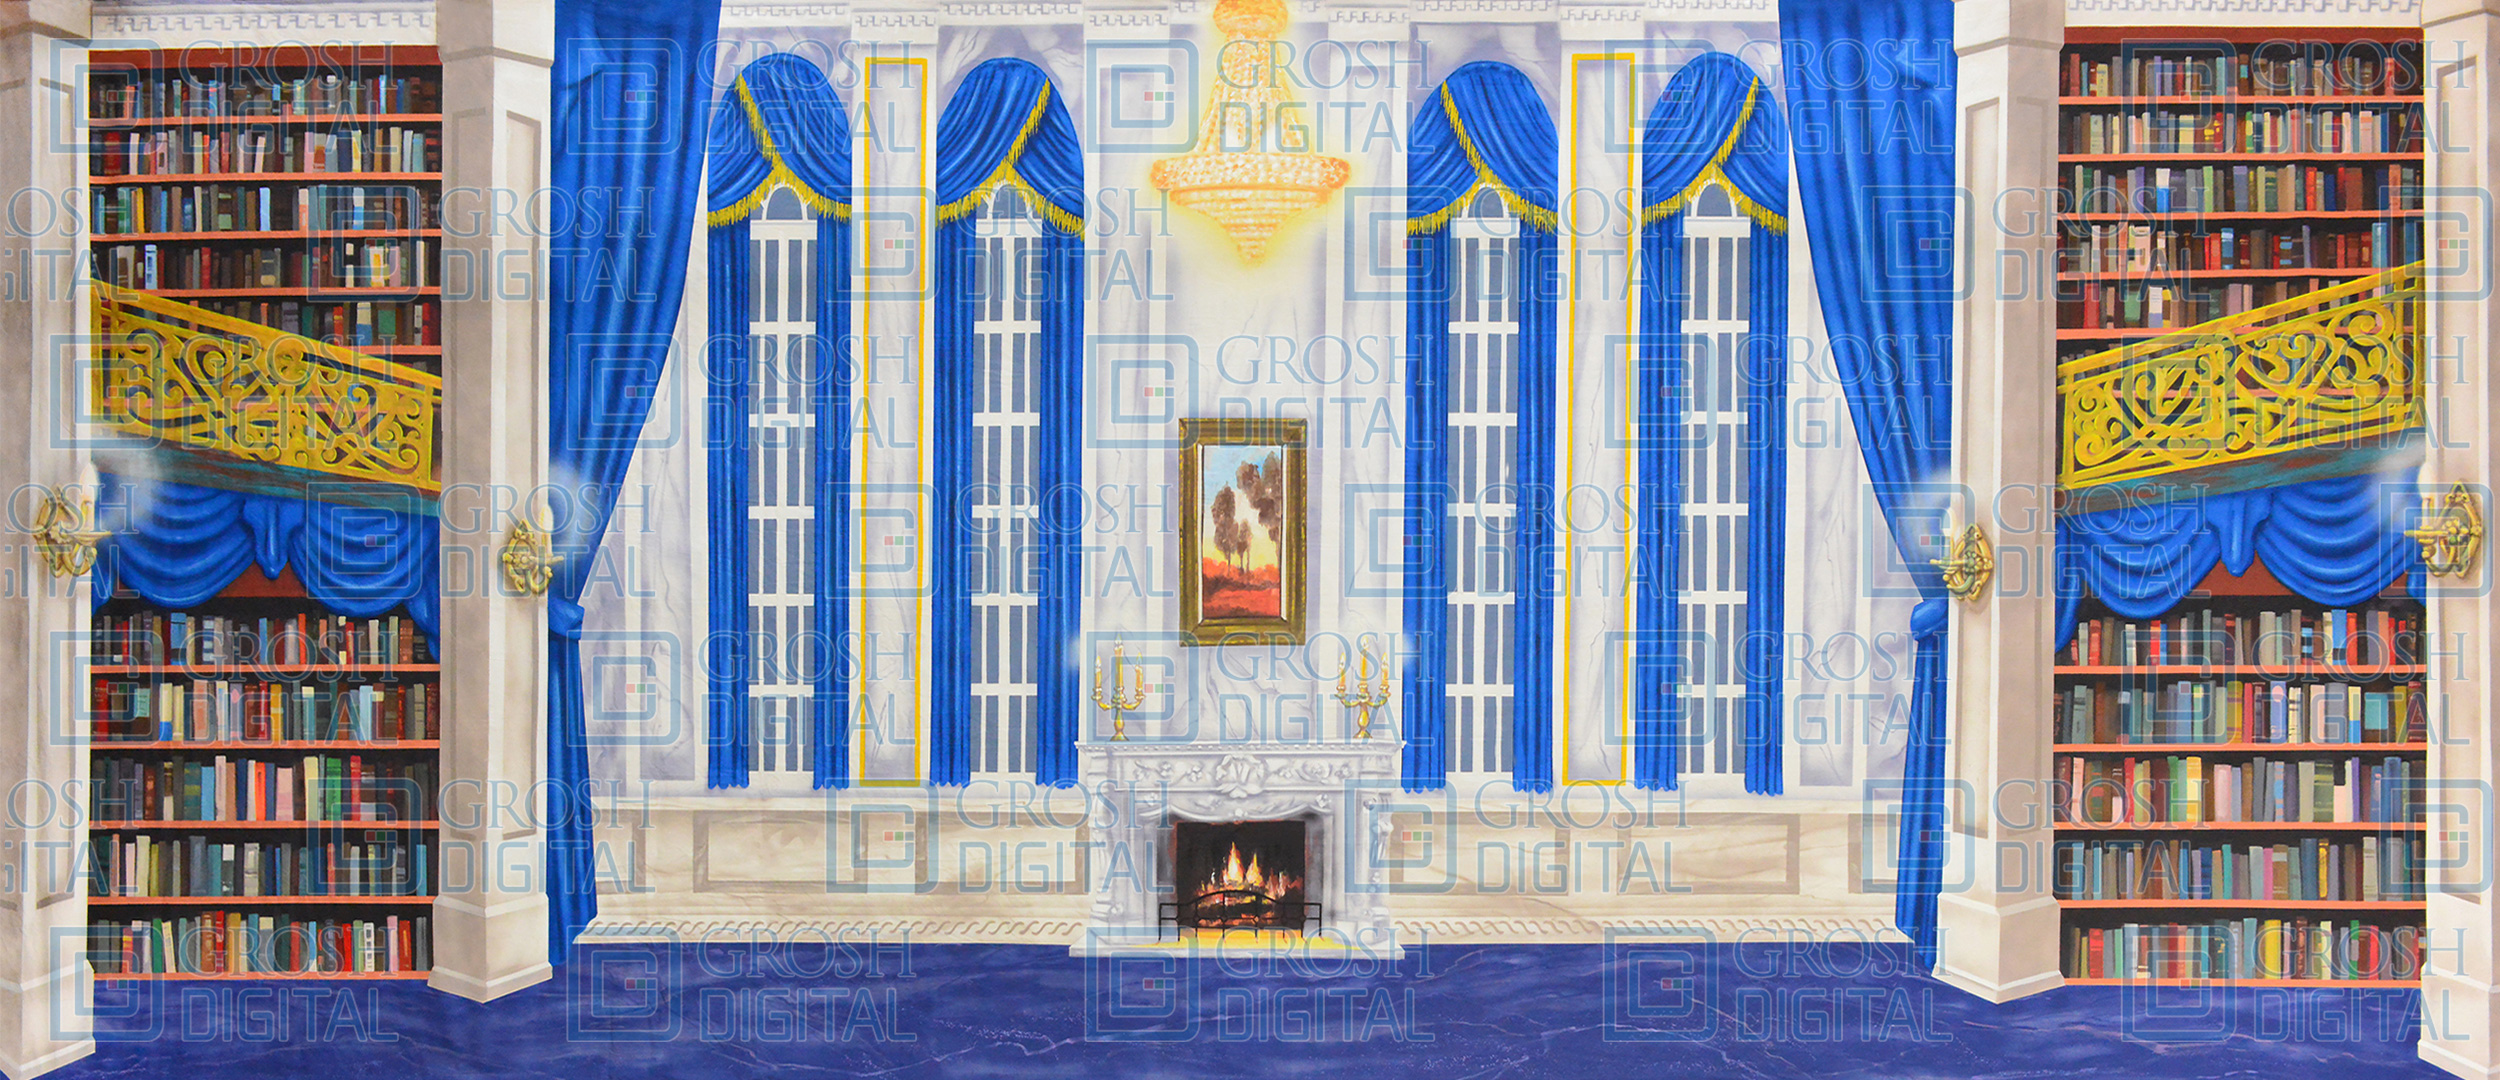 White Grand Study Projected Backdrop for Addams Family, Beauty and the Beast, Cinderella, Coppelia, Dance, Frozen, Interiors, Legally Blonde, Mamma Mia, Mary Poppins, My Fair Lady, Nutcracker, Palace/Parlors, Sleeping Beauty, Sound of Music